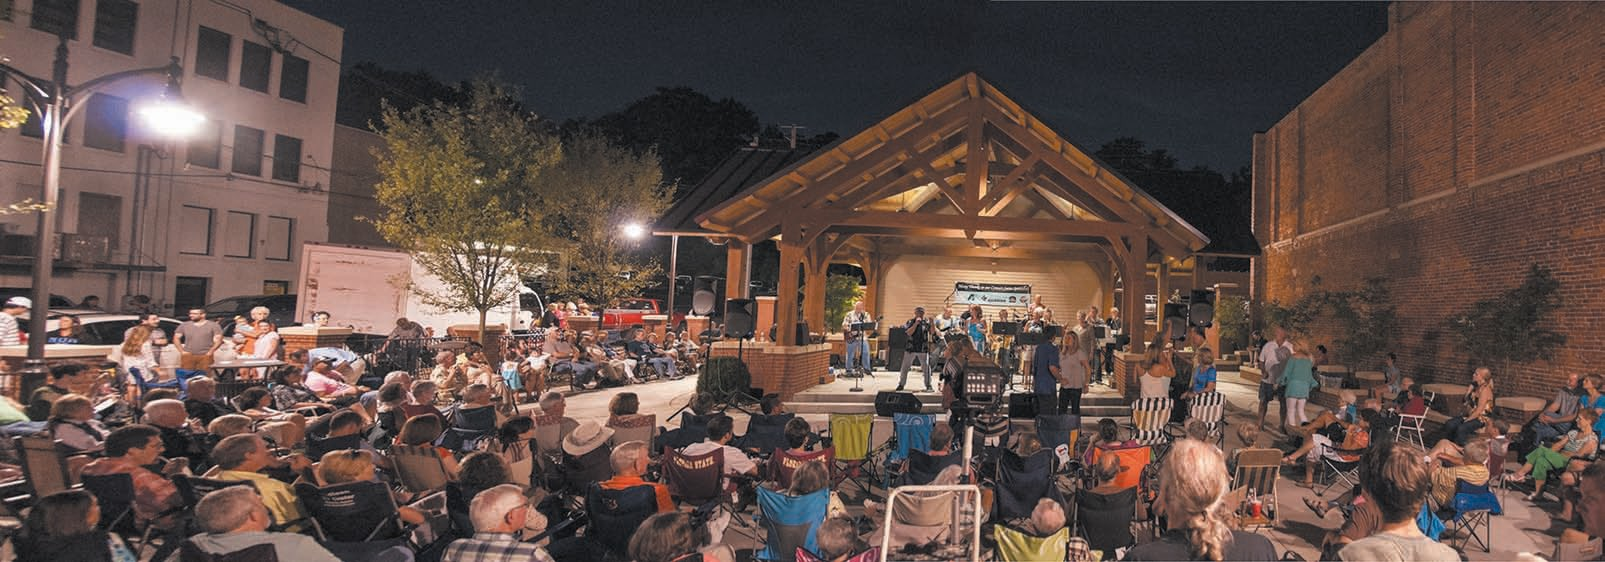 Errol Allen Park in downtown Guntersville was built as a result of the ACE process of identifying needs and meeting them. It has become a magnet for concerts and other civic events in the town center.